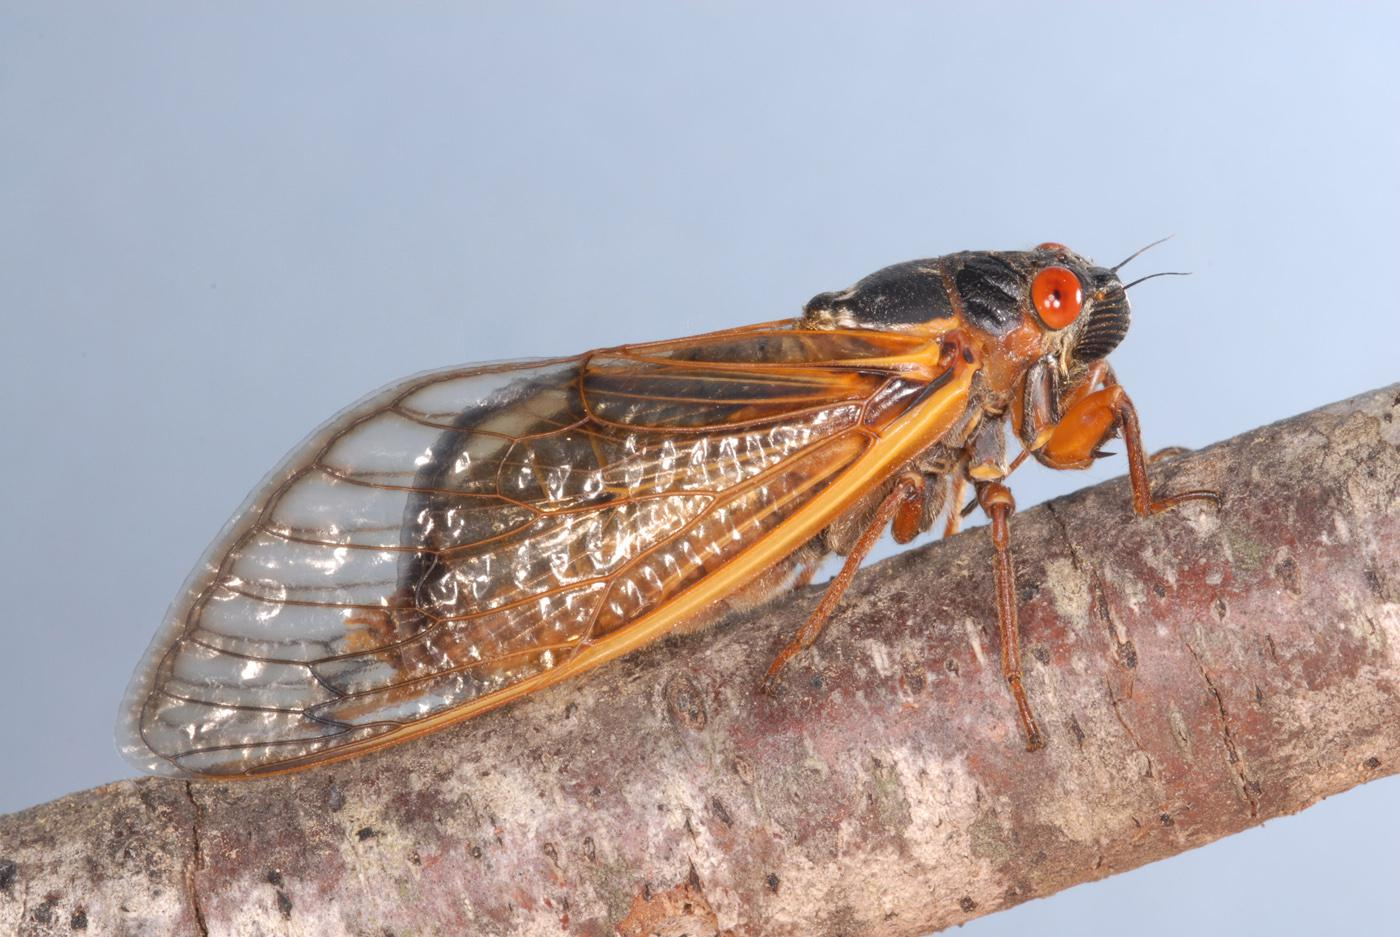 One of the three broods of 13-year cicadas will emerge in the thousands this spring in Mississippi. With their black bodies and orange eyes, these periodical cicadas are different from the large, green, annual cicadas that emerge each summer. (Photo by MSU Extension Service/Blake Layton)